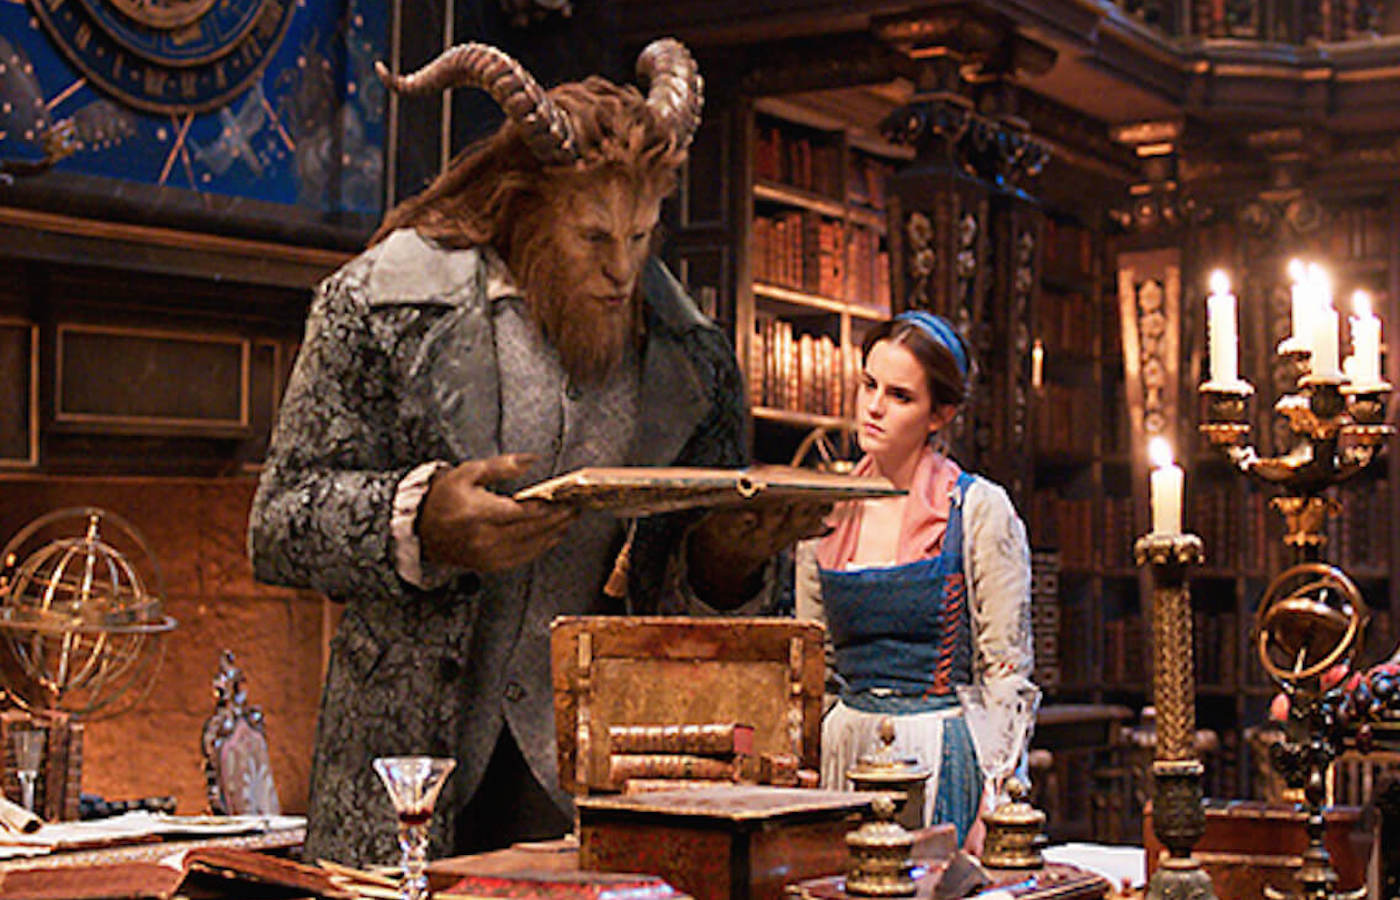 Beauty and the beast image ew dan stevens emma watson のコピー